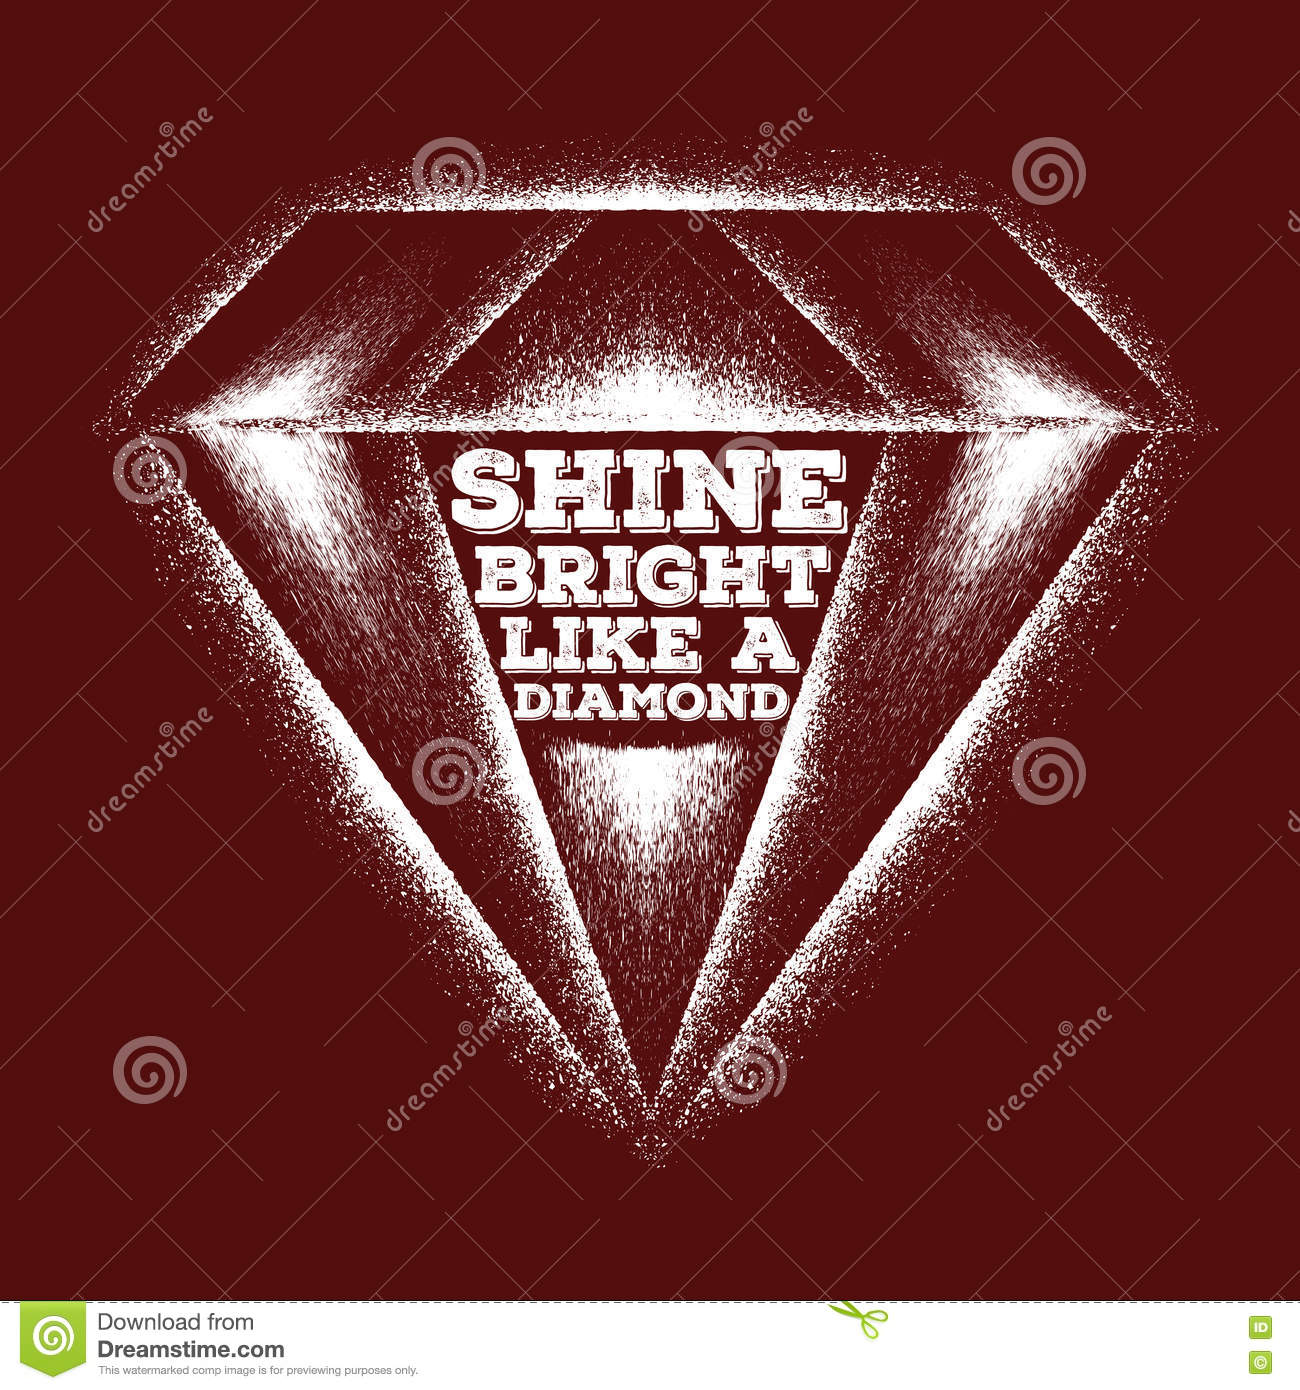 only now crafted that their pin brighter are glorifying with earrings diamonds appreciates value shine will as diamond